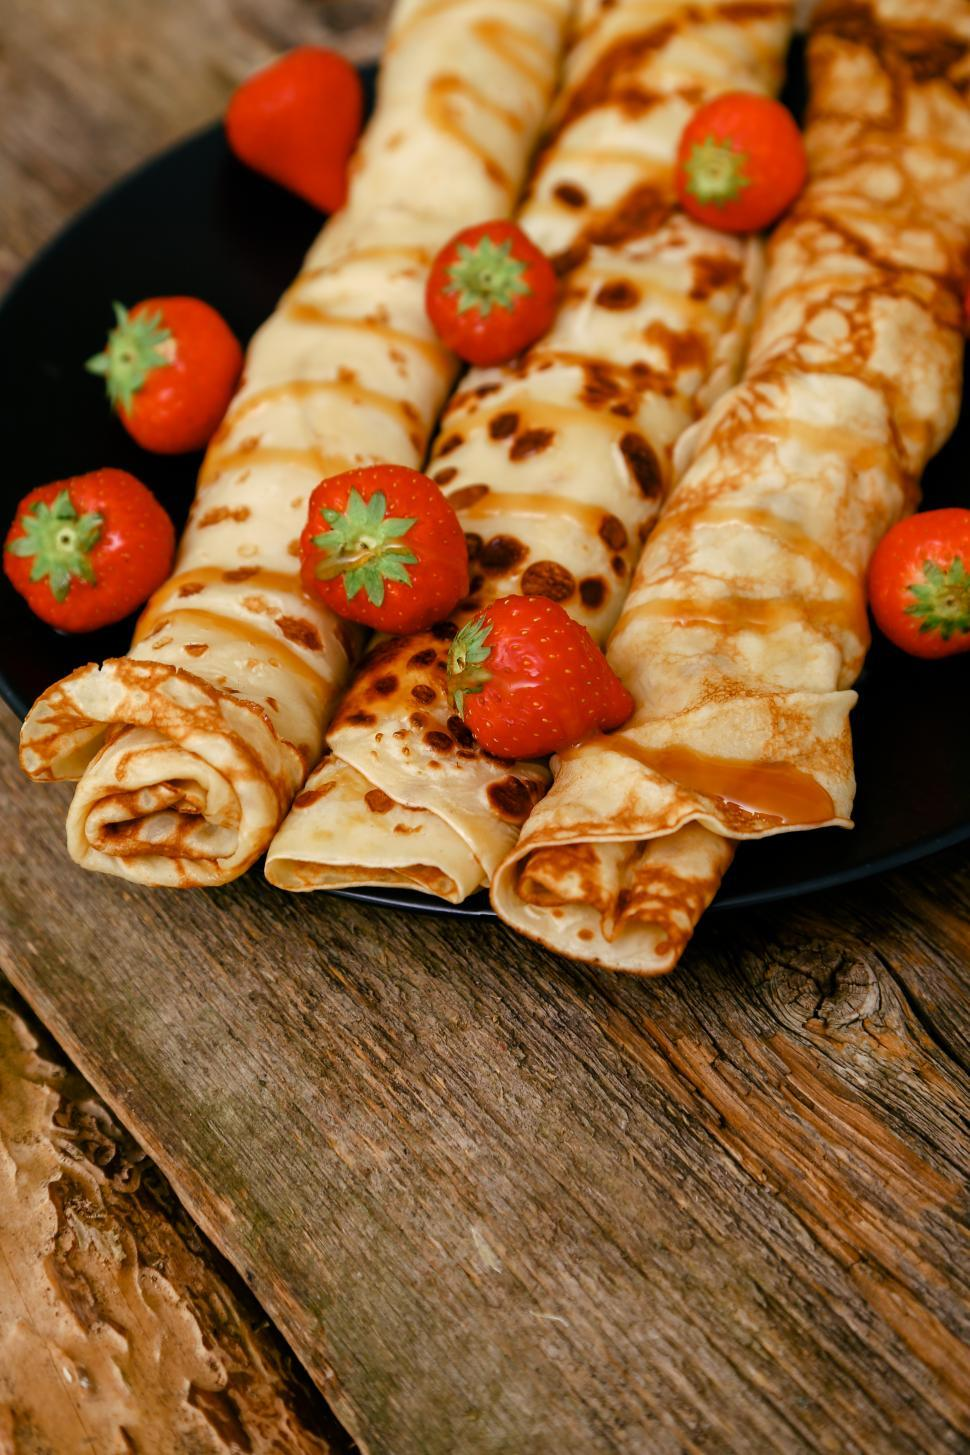 Download Free Stock Photo of Homemade pancakes - blinis rolled with fruit